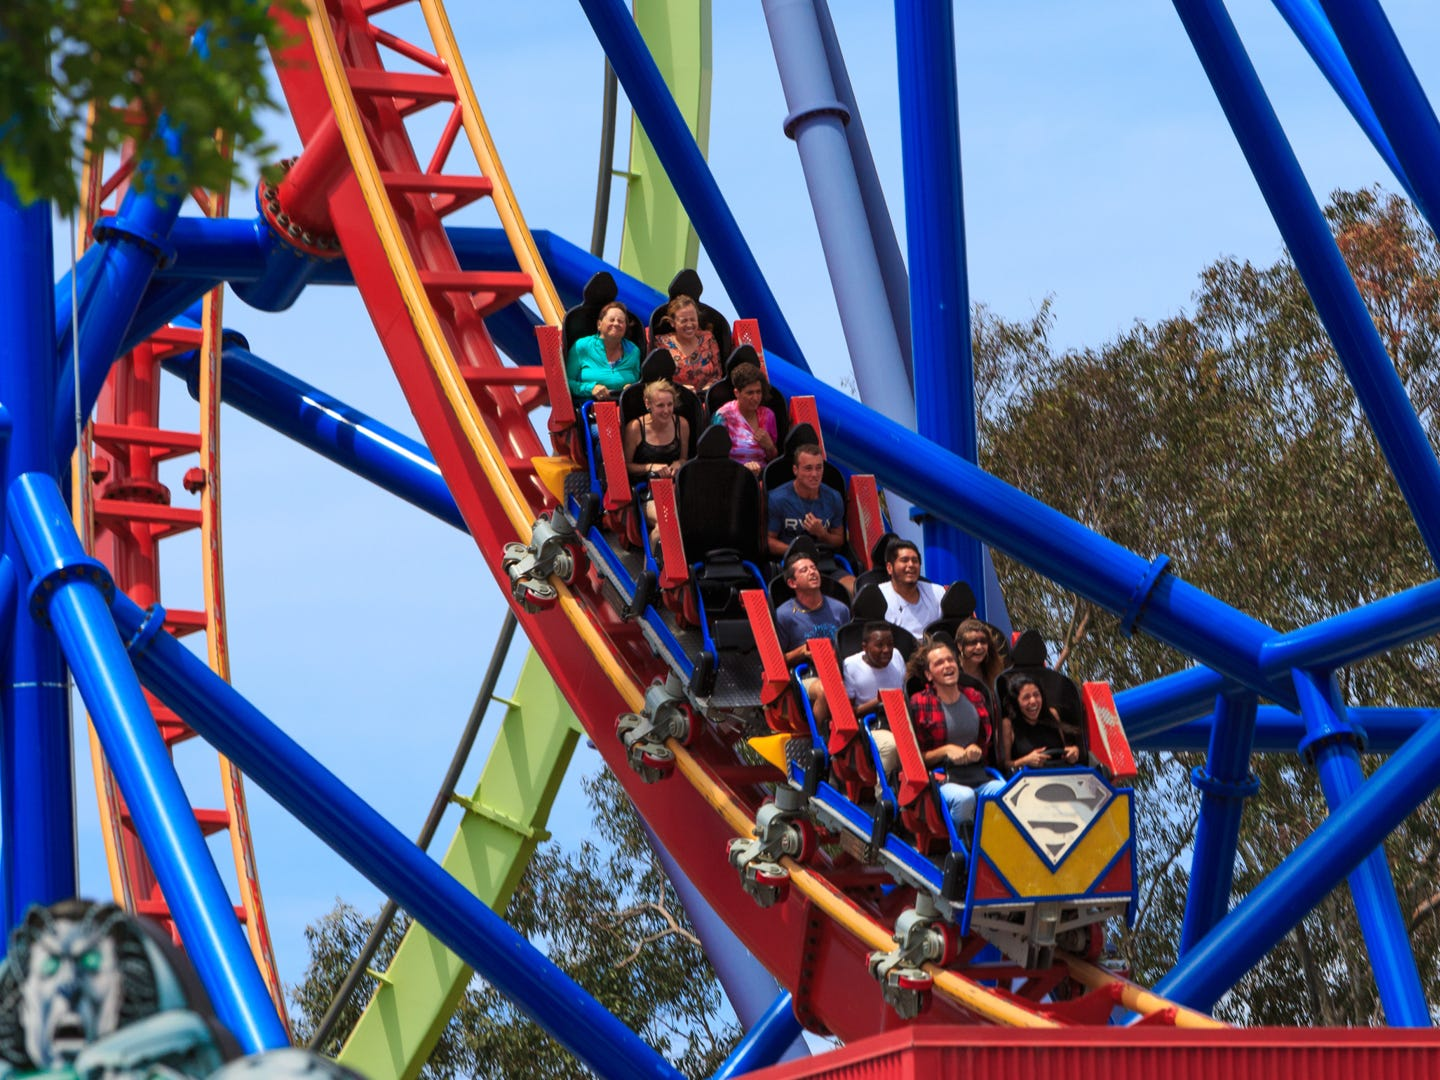 Six Flags Discovery Kingdom: $69.99 at the gate; $44.99 if booked online. Discovery Kingdom in Vallejo, California, introduced some new attractions in 2017, including Wonder Woman Lasso of Truth, and will debut the world's first dual-looping coaster — the Harley Quinn Crazy Coaster — this spring. While the park is known for its thrill rides like Cobra, Tazmanian Devil and Superman Ultimate Flight, families with young children won't struggle to find the fun. Along with the famed coasters, guests can enjoy animal attractions, family rides and live entertainment. The park also offers lots of price-saving freebies and discounts. Get free refills on drinks all season or score a shopping pass for 20% off.